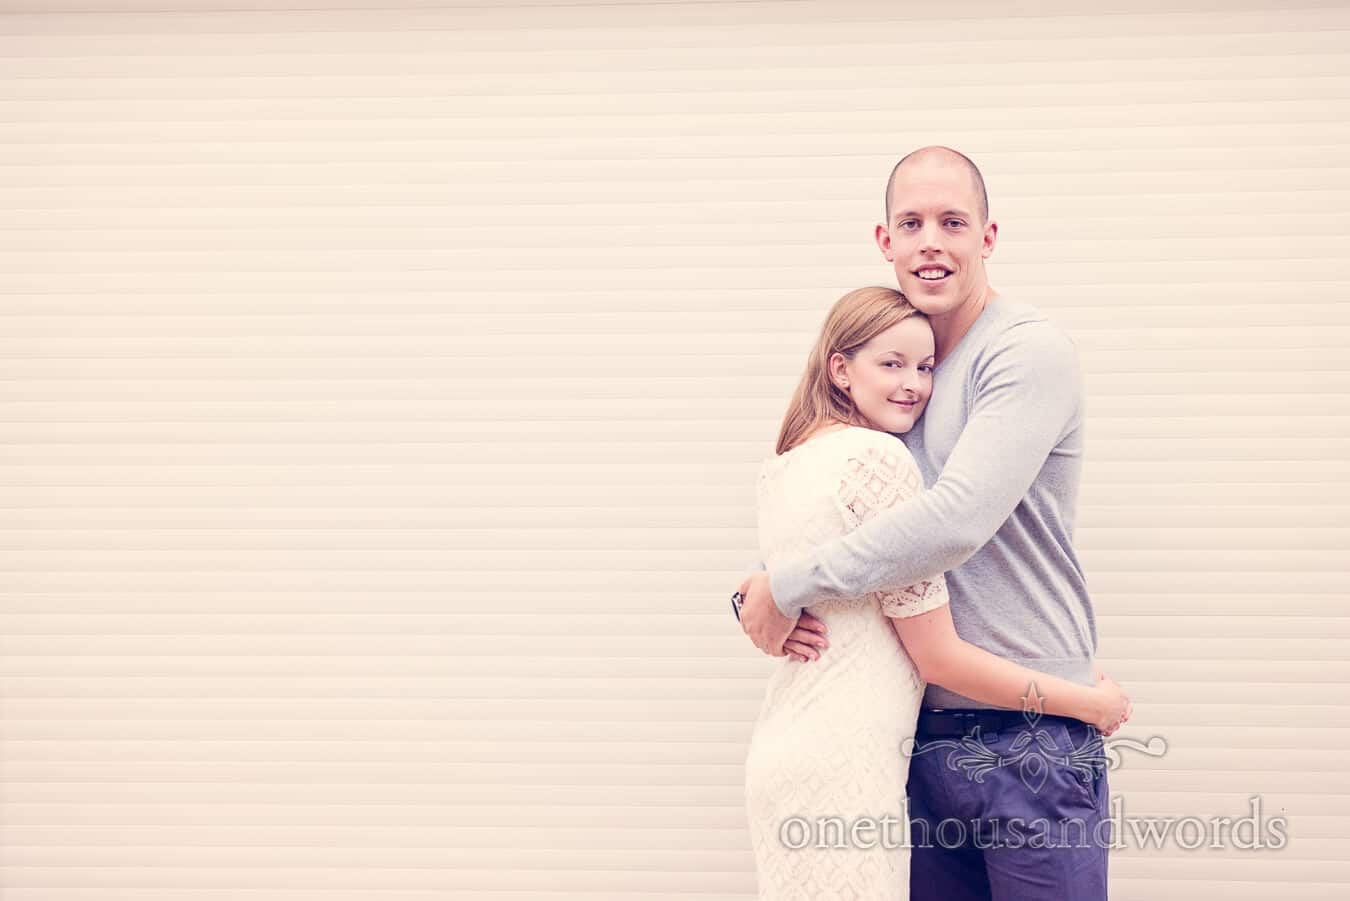 Bride and groom to be hug against white slatted backdrop